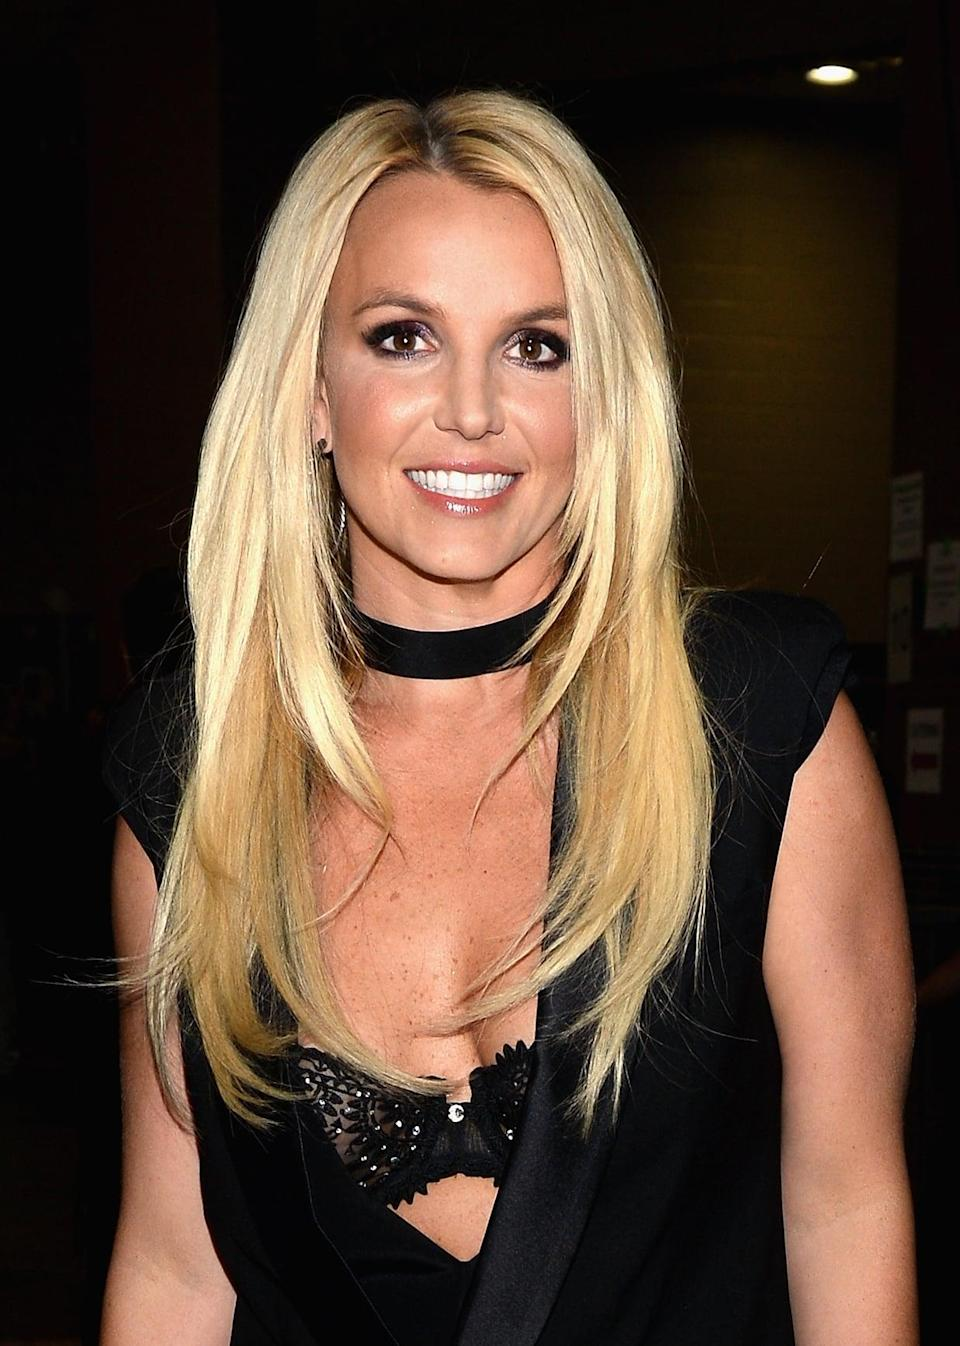 """<p>During another court hearing, <a href=""""https://variety.com/2021/music/news/britney-spears-new-lawyer-conservatorship-hearing-court-1235019271/"""" class=""""link rapid-noclick-resp"""" rel=""""nofollow noopener"""" target=""""_blank"""" data-ylk=""""slk:a judge granted the singer permission"""">a judge granted the singer permission</a> to hire her own lawyer following Samuel's exit. Britney's new lawyer is Mathew Rosengart, who's previously represented stars like <a class=""""link rapid-noclick-resp"""" href=""""https://www.popsugar.com/Julia-Louis-Dreyfus"""" rel=""""nofollow noopener"""" target=""""_blank"""" data-ylk=""""slk:Julia Louis-Dreyfus"""">Julia Louis-Dreyfus</a> and <a class=""""link rapid-noclick-resp"""" href=""""https://www.popsugar.com/Keanu-Reeves"""" rel=""""nofollow noopener"""" target=""""_blank"""" data-ylk=""""slk:Keanu Reeves"""">Keanu Reeves</a>. </p> <p>""""Pursuant to my statement in open court on June 23, 2021, my rights, and my desire to end the above-referenced conservatorship as to my father, Jamie P. Spears, it is my desire to choose and retain my own counsel, at Greenberg, Traurig, LLP as set forth above,"""" Britney stated in legal documents.</p> <p>In her testimony, <a href=""""https://www.usmagazine.com/celebrity-news/news/britney-spears-accuses-father-of-conservatorship-abuse/"""" class=""""link rapid-noclick-resp"""" rel=""""nofollow noopener"""" target=""""_blank"""" data-ylk=""""slk:Britney also accused her father"""">Britney also accused her father</a> of abusing his power as her conservator. """"I'm here to get rid of my dad and charge him with conservatorship abuse,"""" she told the court. """"This conservatorship has allowed my dad to ruin my life.""""</p> <p>Following the hearing, <a href=""""https://www.popsugar.com/celebrity/britney-spears-new-conservatorship-lawyer-reaction-48419777"""" class=""""link rapid-noclick-resp"""" rel=""""nofollow noopener"""" target=""""_blank"""" data-ylk=""""slk:Britney celebrated her new conservatorship lawyer"""">Britney celebrated her new conservatorship lawyer</a> by posting a video of herself horseback riding and doing cartwheels. """"Coming alon"""